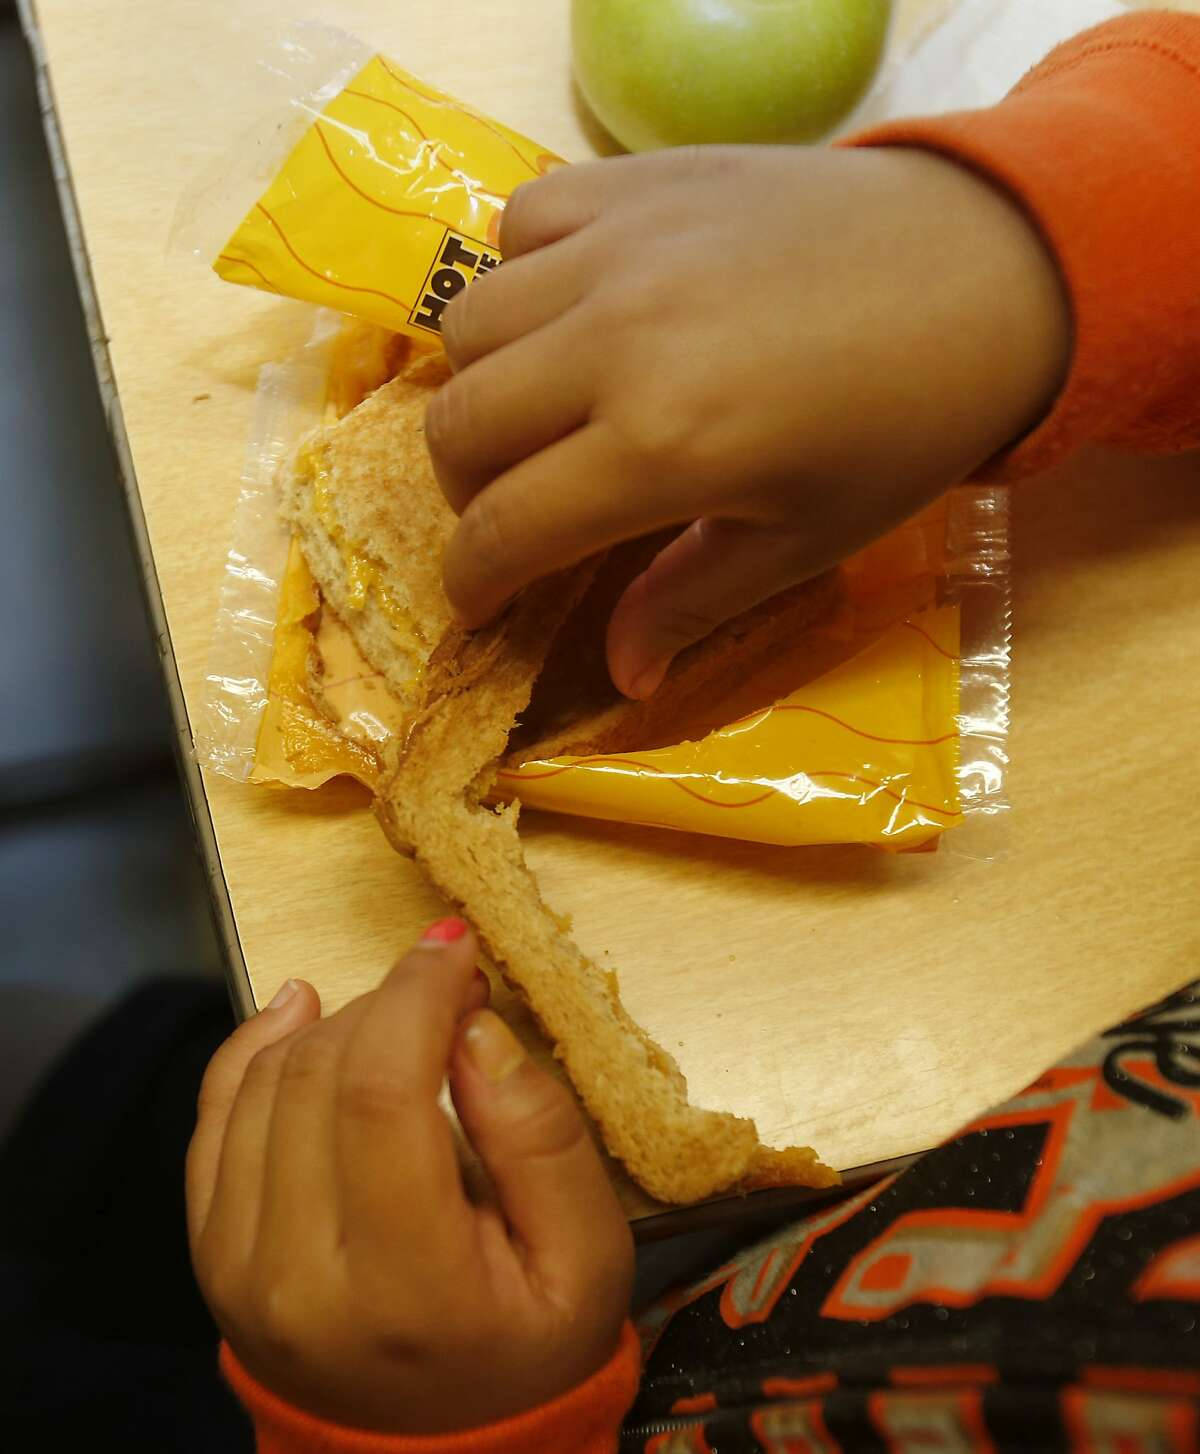 One student removed the crust as she ate her grilled cheese sandwich Monday September 8, 2014 at Spruce School in South San Francisco, Calif. Some Bay Area schools are beginning to offer meatless lunches for their students, among them is Spruce School in South San Francisco.